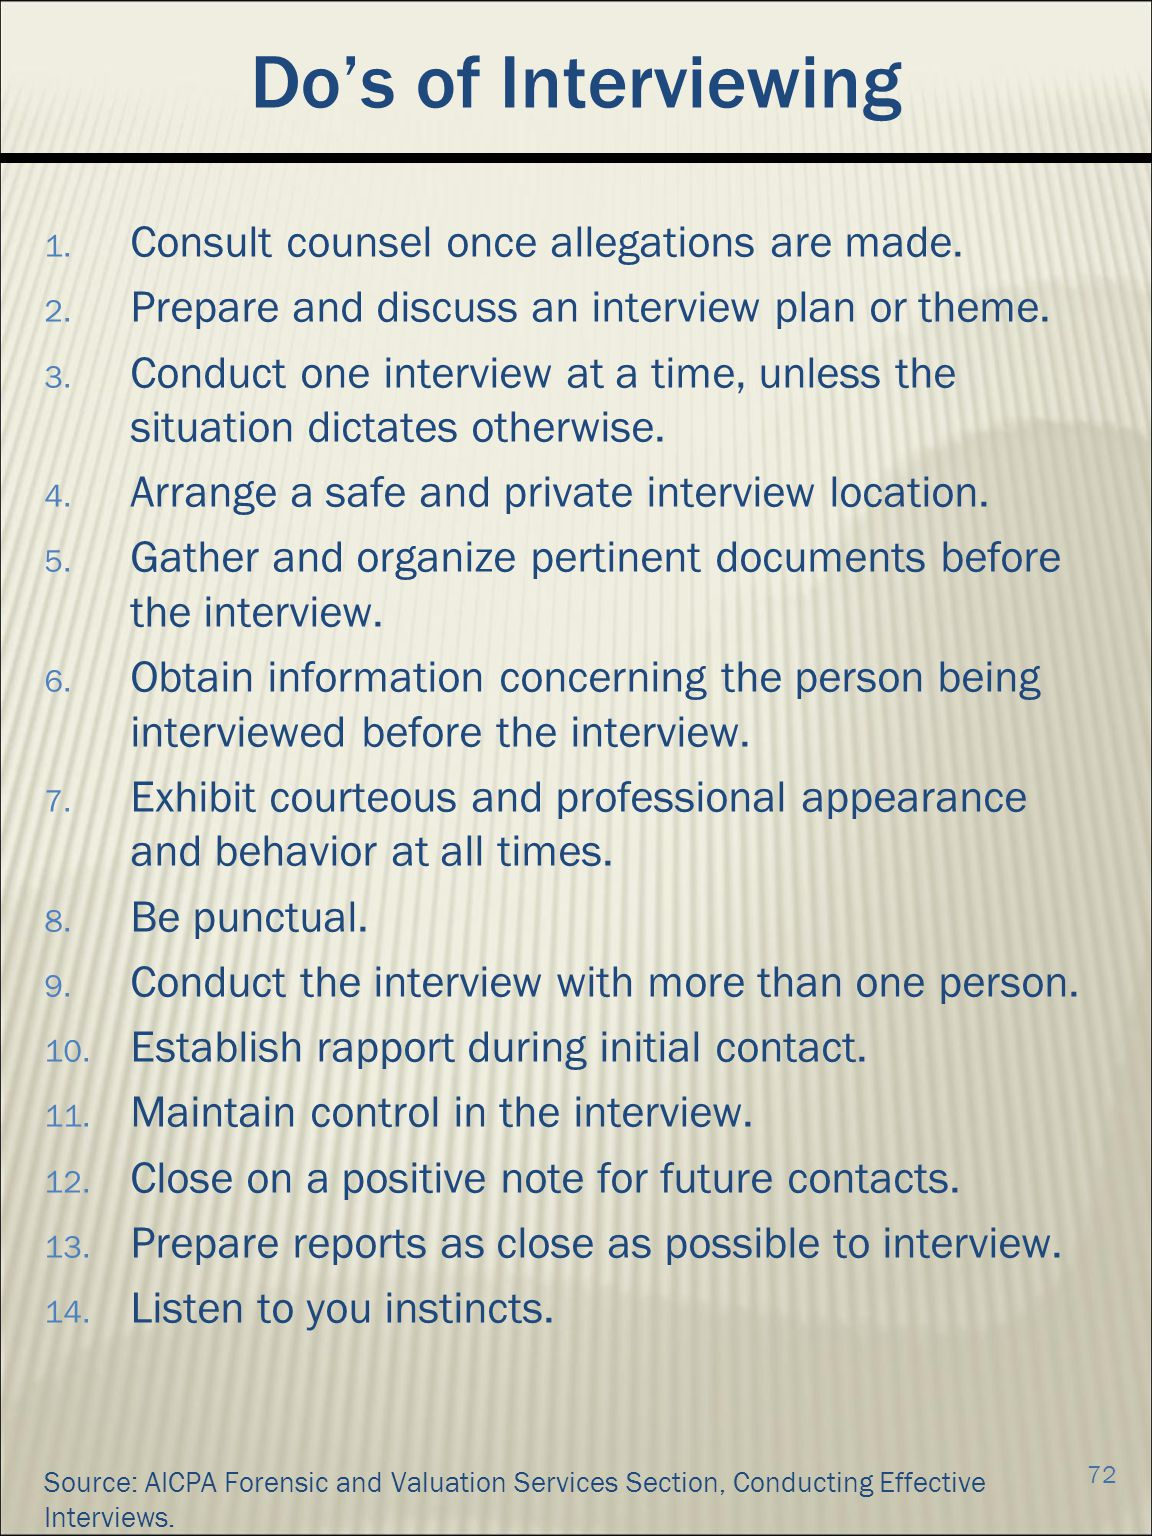 Dos of Interviewing 1.Consult counsel once allegations are made.